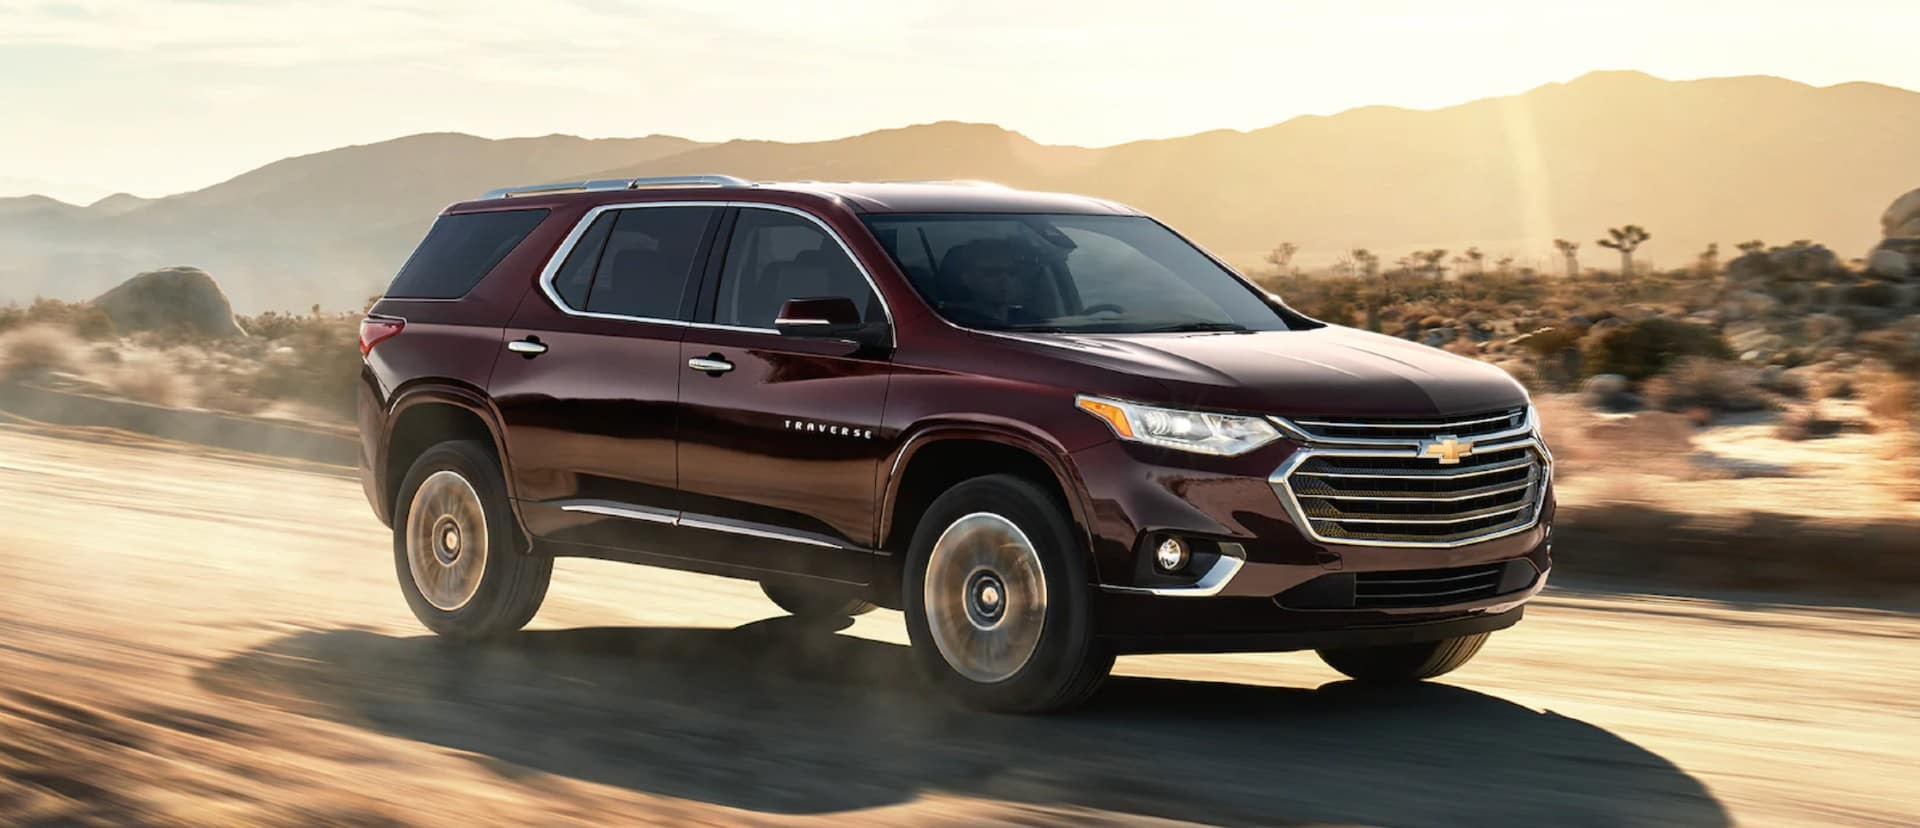 picture of chevrolet traverse black cherry 2021 exterior for sale in Hooksett New Hampshire